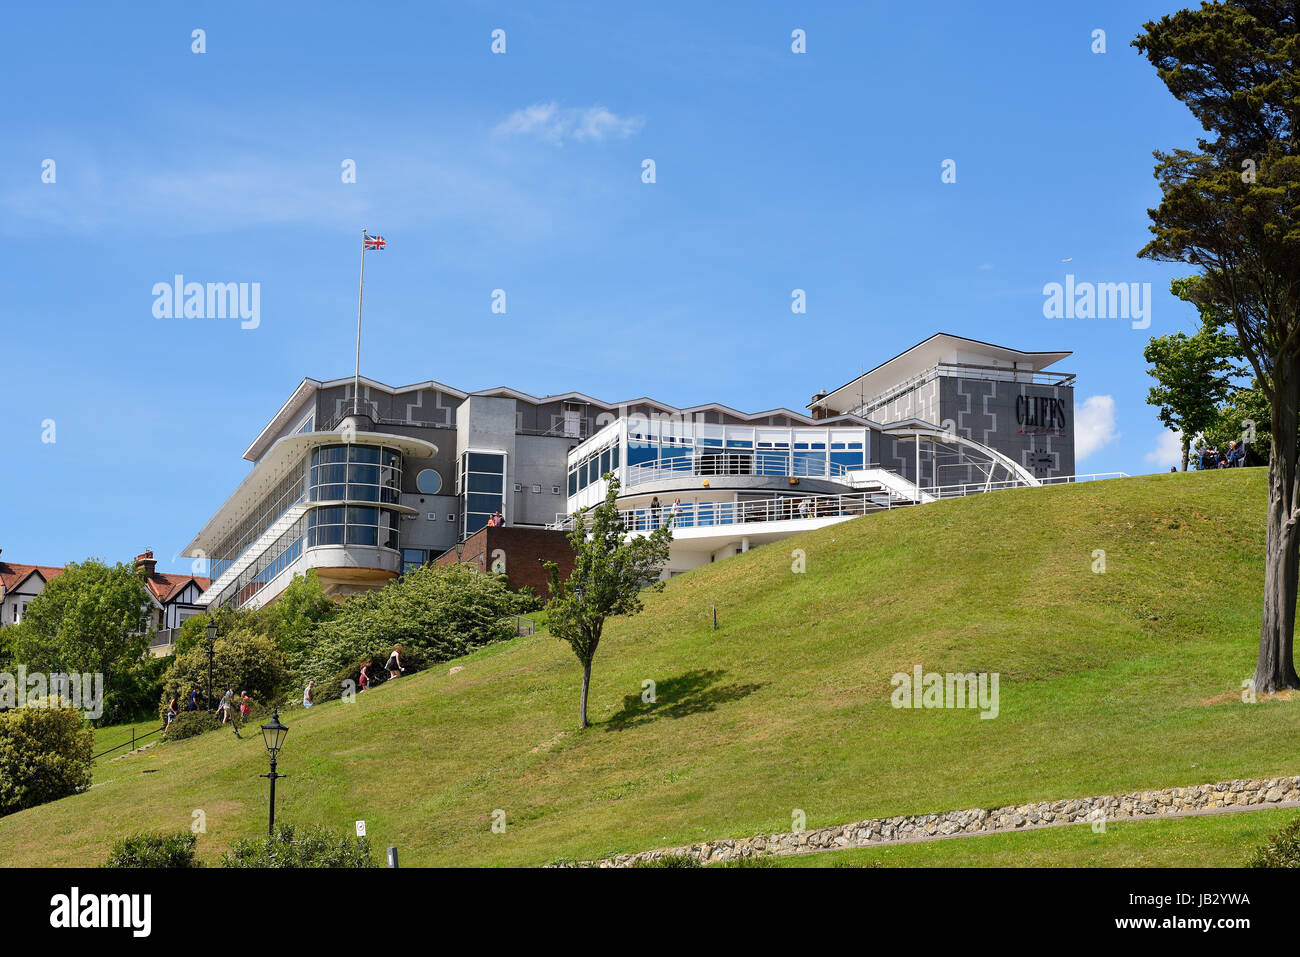 Cliffs Pavilion at Westcliff on Sea, Essex, owned by Southend Borough Council and run by HQ Theatres and Hospitality. - Stock Image